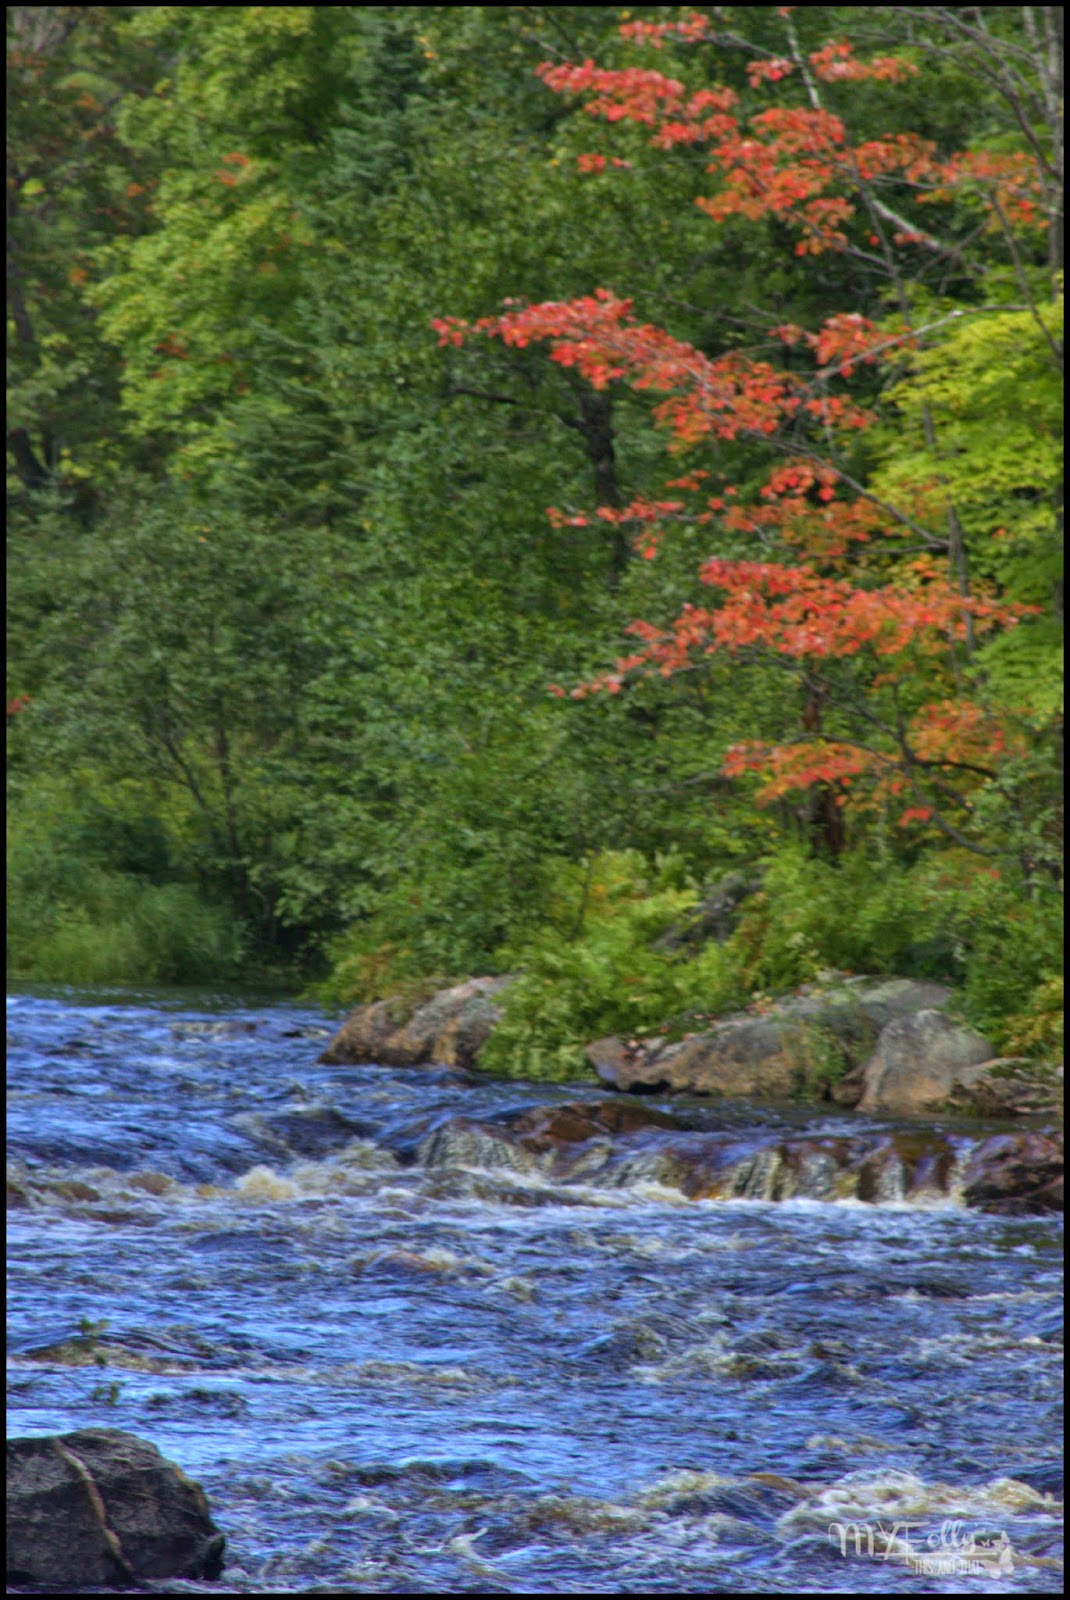 Almost Wordless Wednesday ~ #fall #leaves #water #uppermichigan